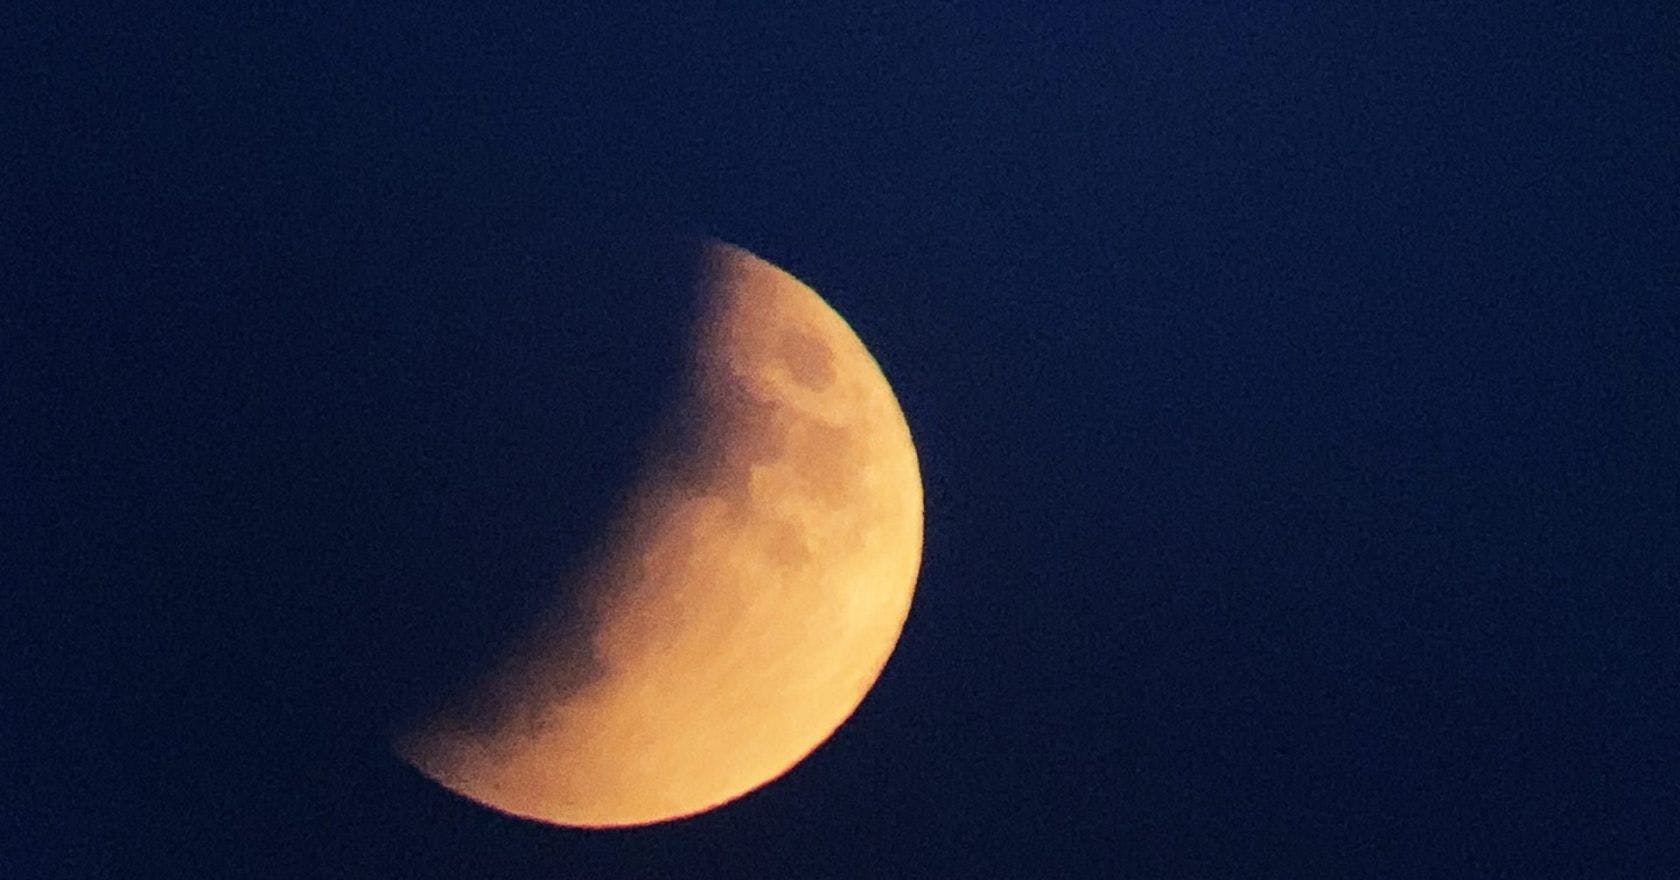 What does the last lunar eclipse of 2020 mean after such a wild year?